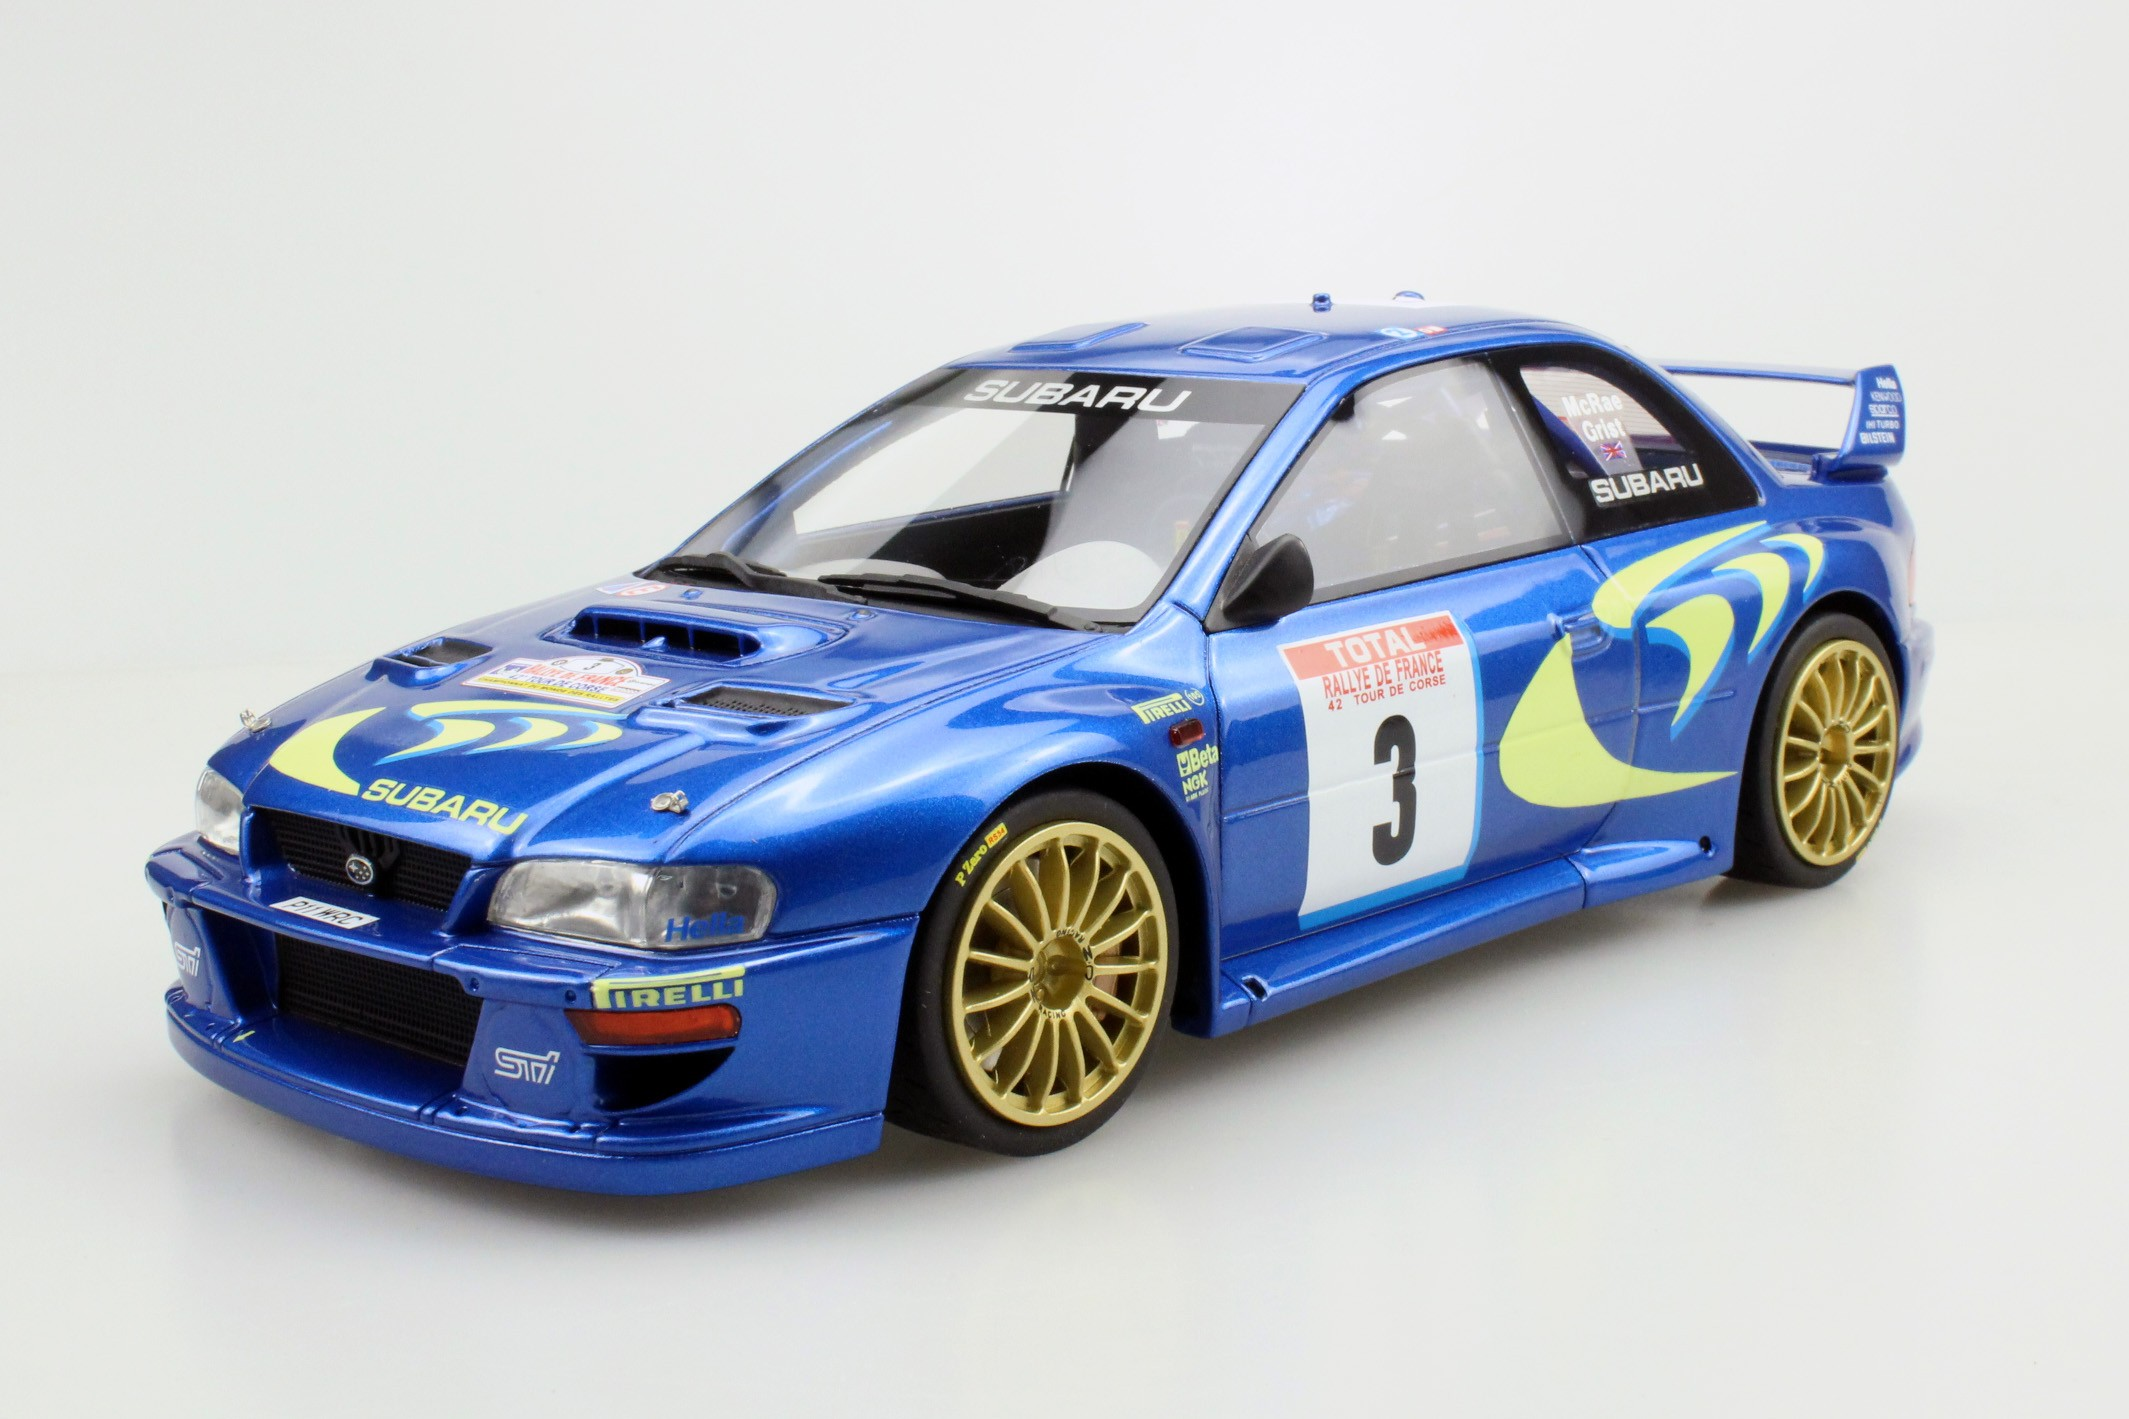 top marques collectibles subaru impreza s4 wrc tour de corse 1998 pre order colin mcrae. Black Bedroom Furniture Sets. Home Design Ideas